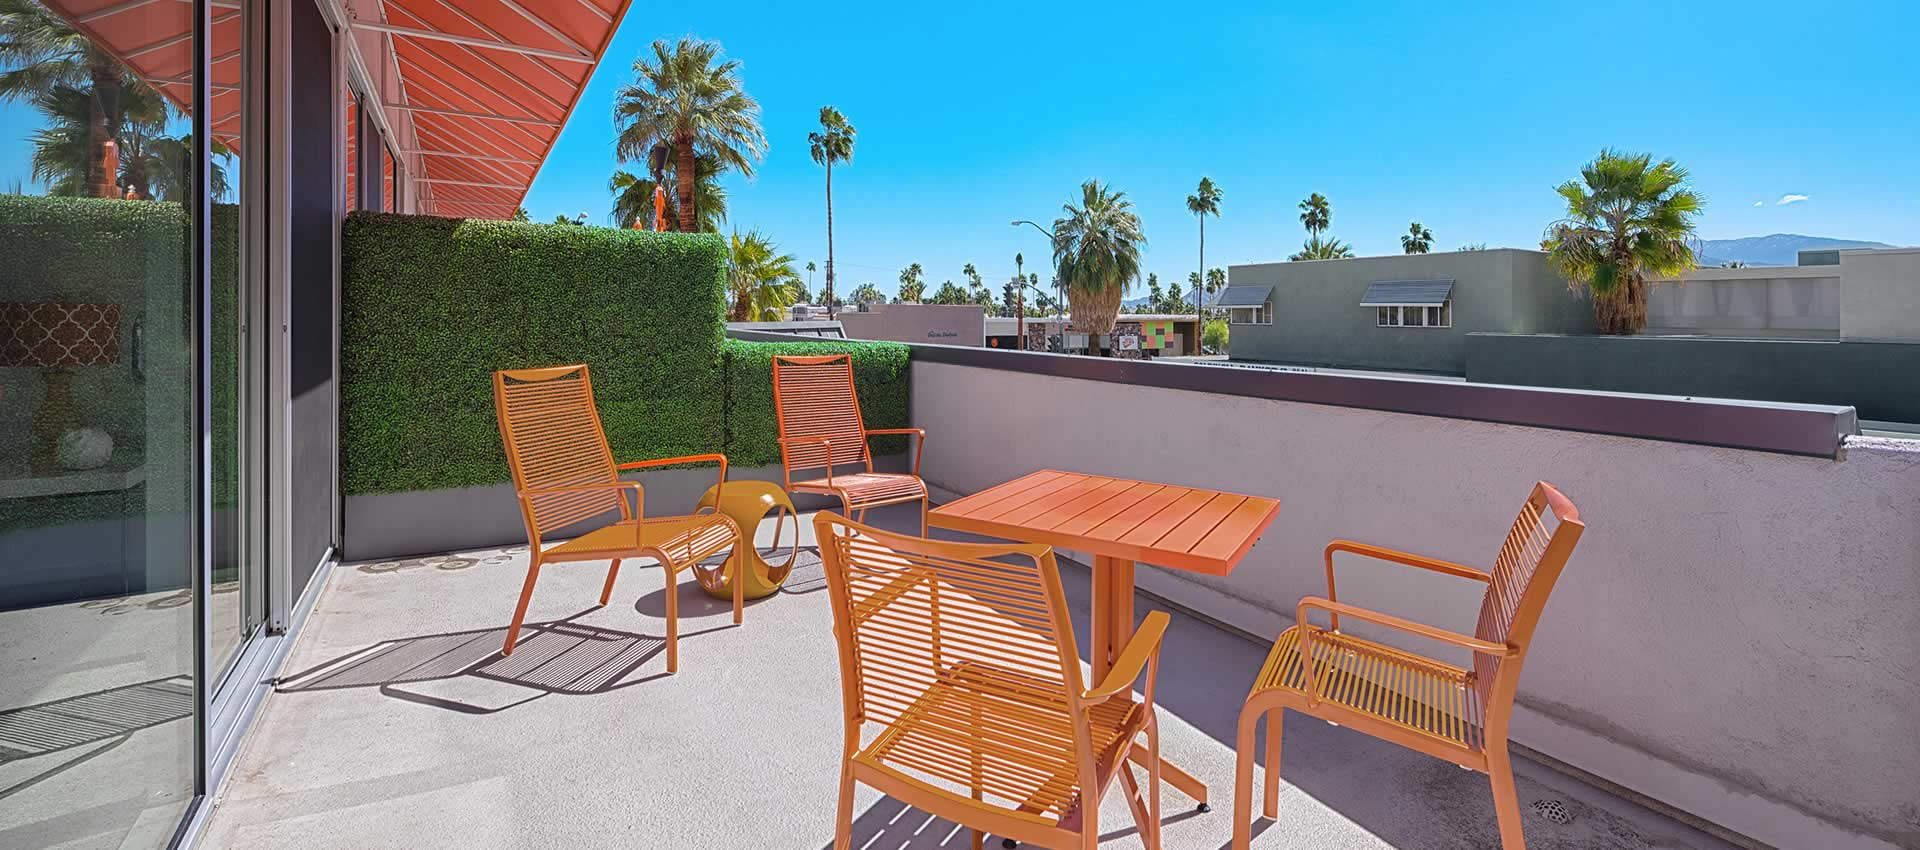 twist hotel room 222 patio with orange tables chairs palm trees